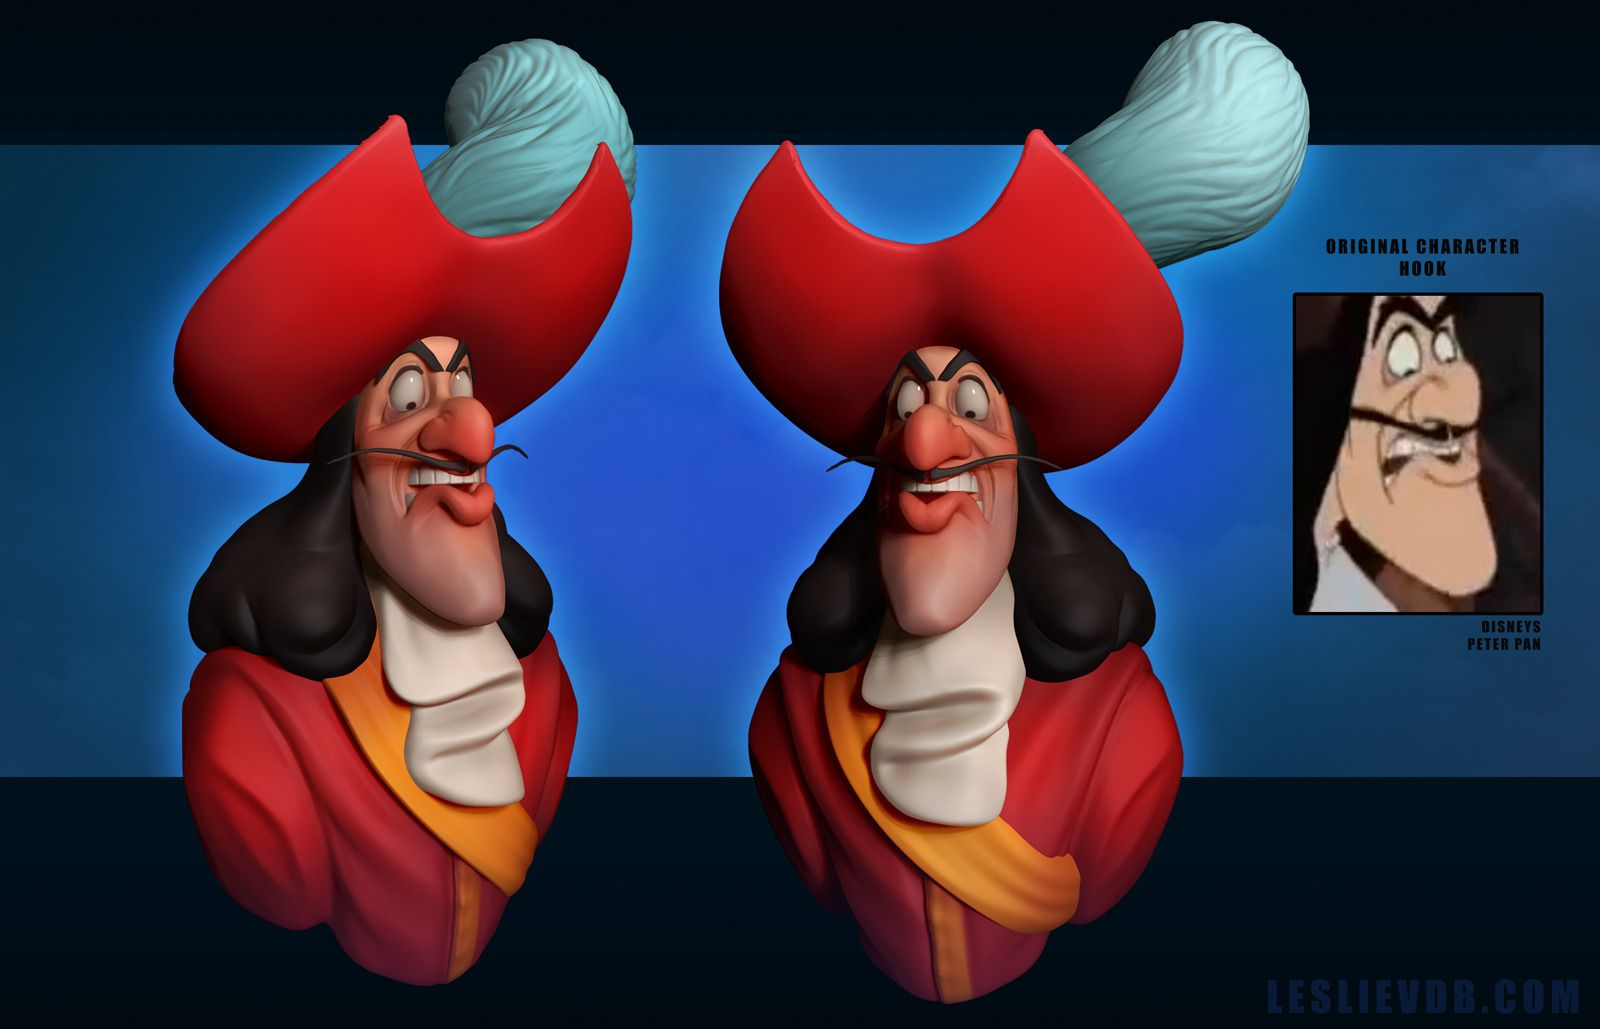 """""""Hook"""" - 3D model by Polycount user Ravenslayer. Daily Disney Doodles - Polycount Forum"""